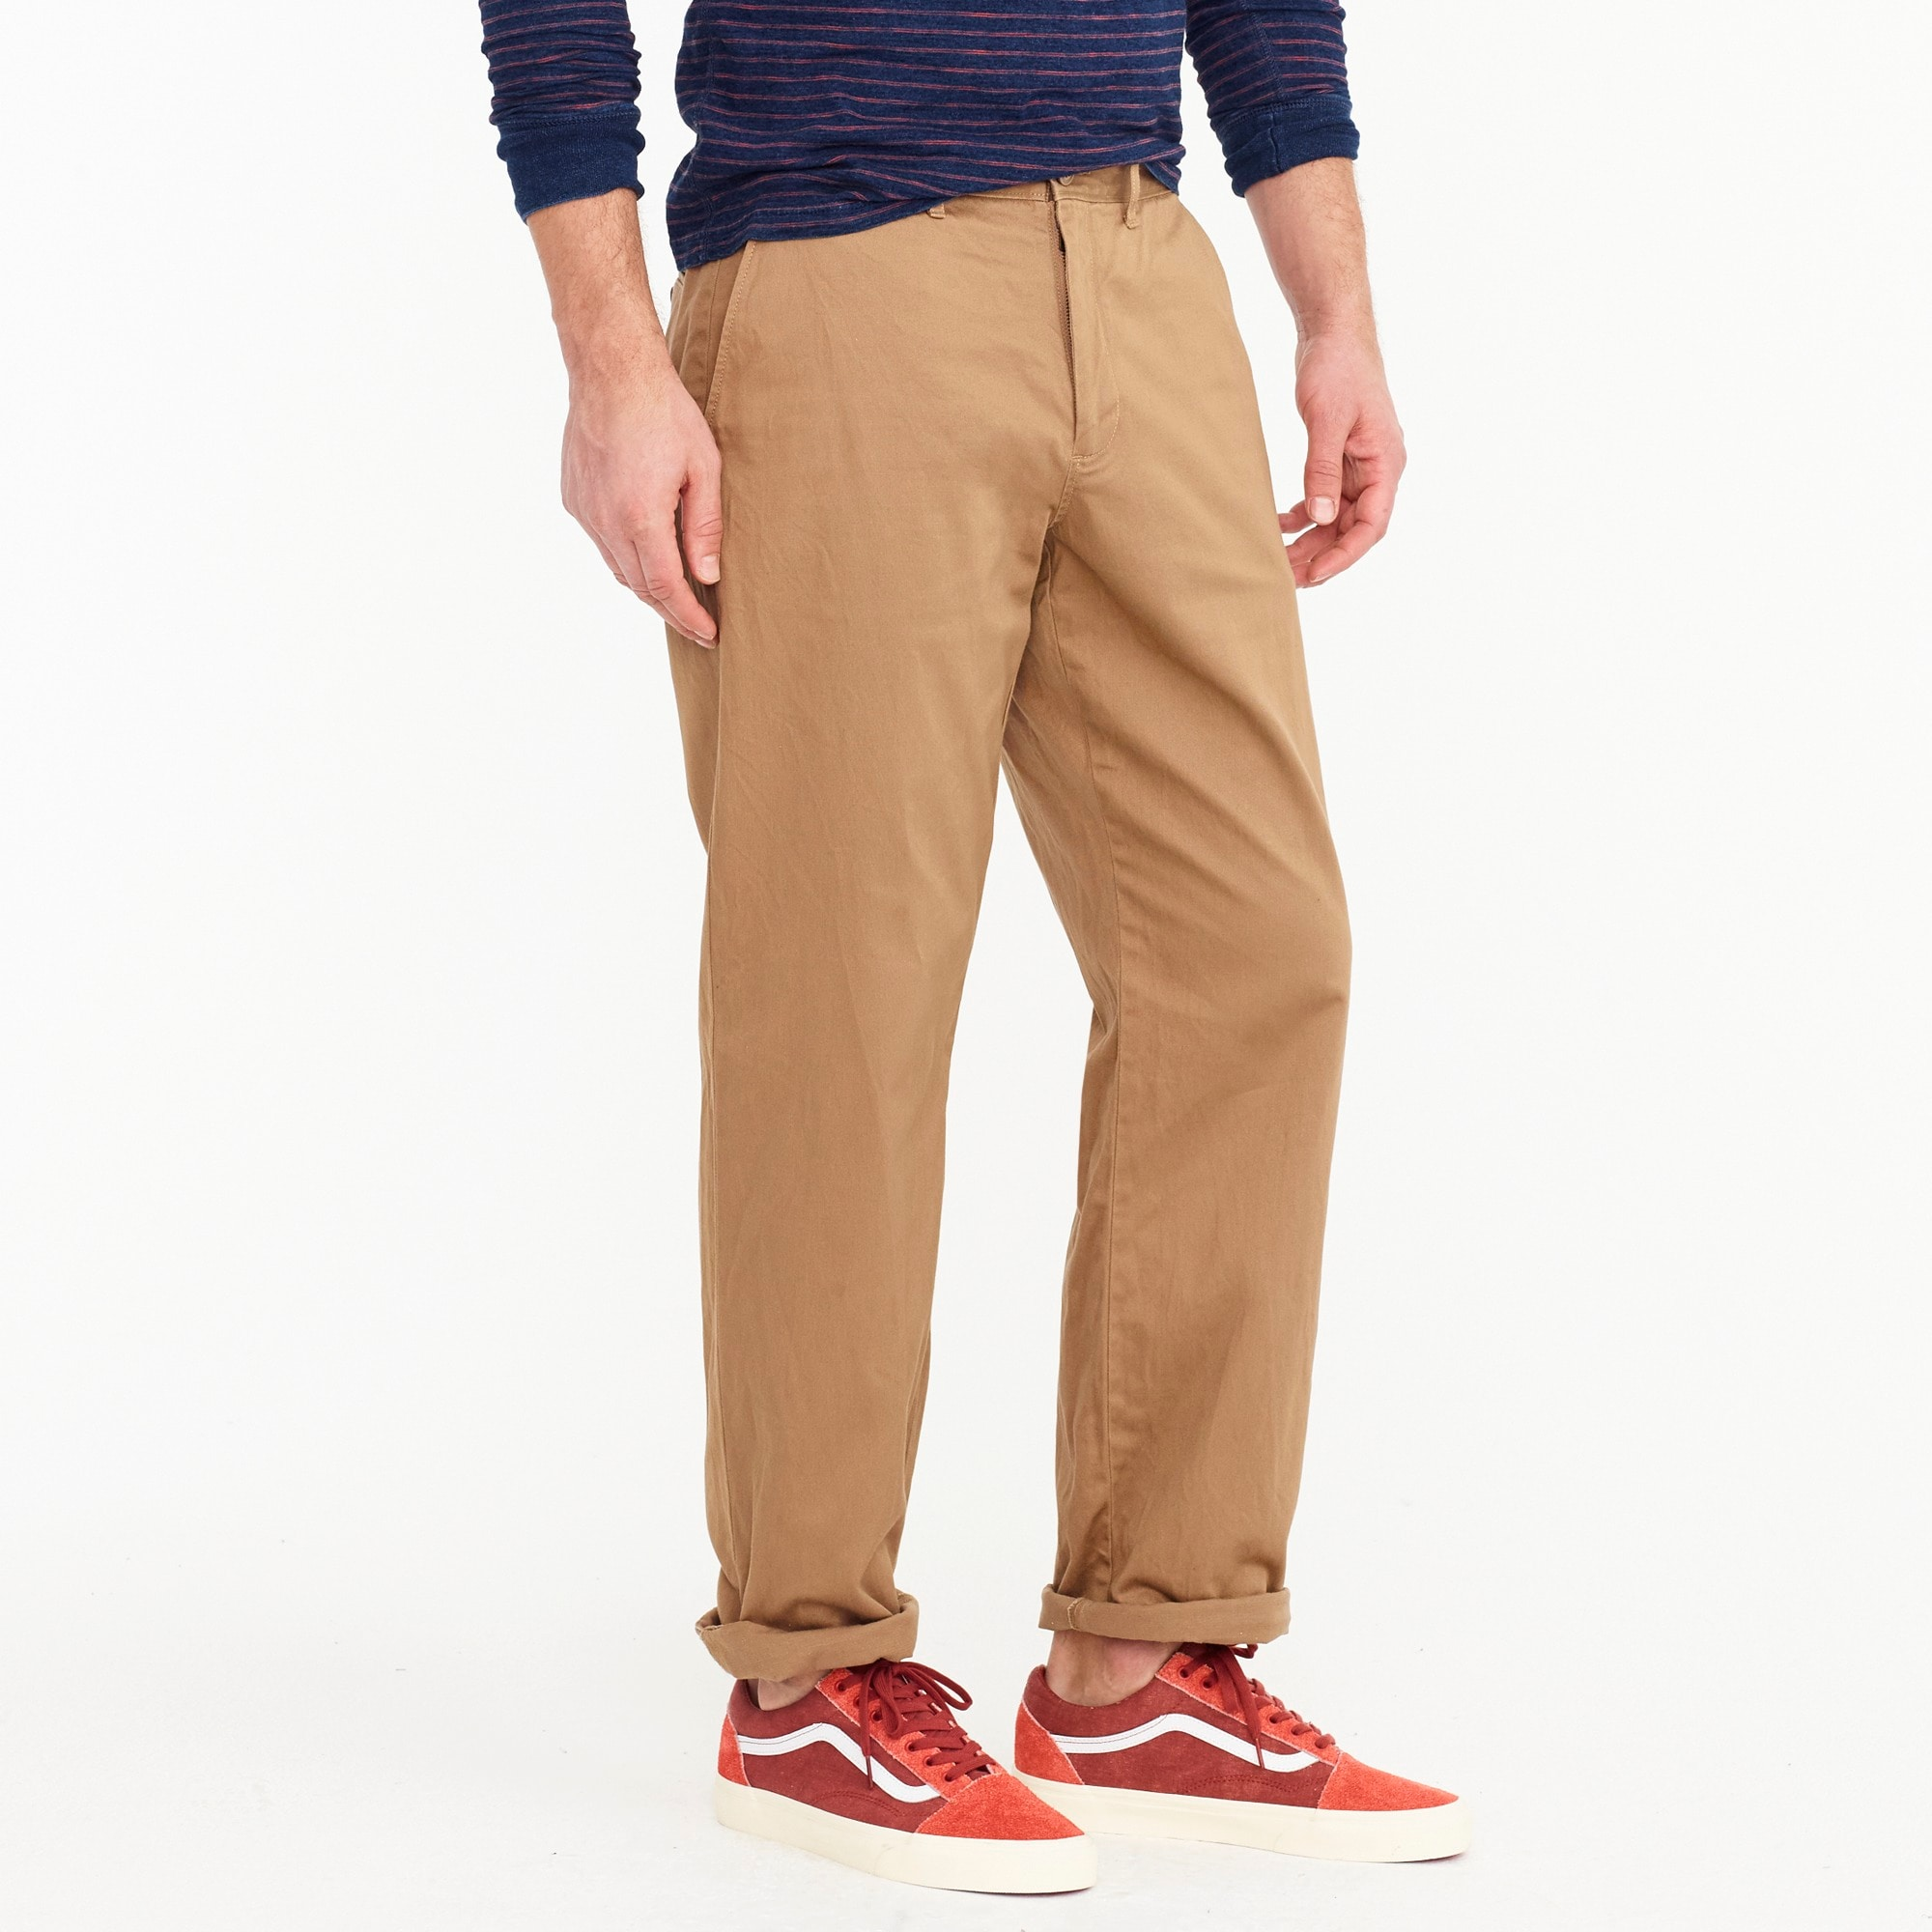 1450 Relaxed-fit stretch chino